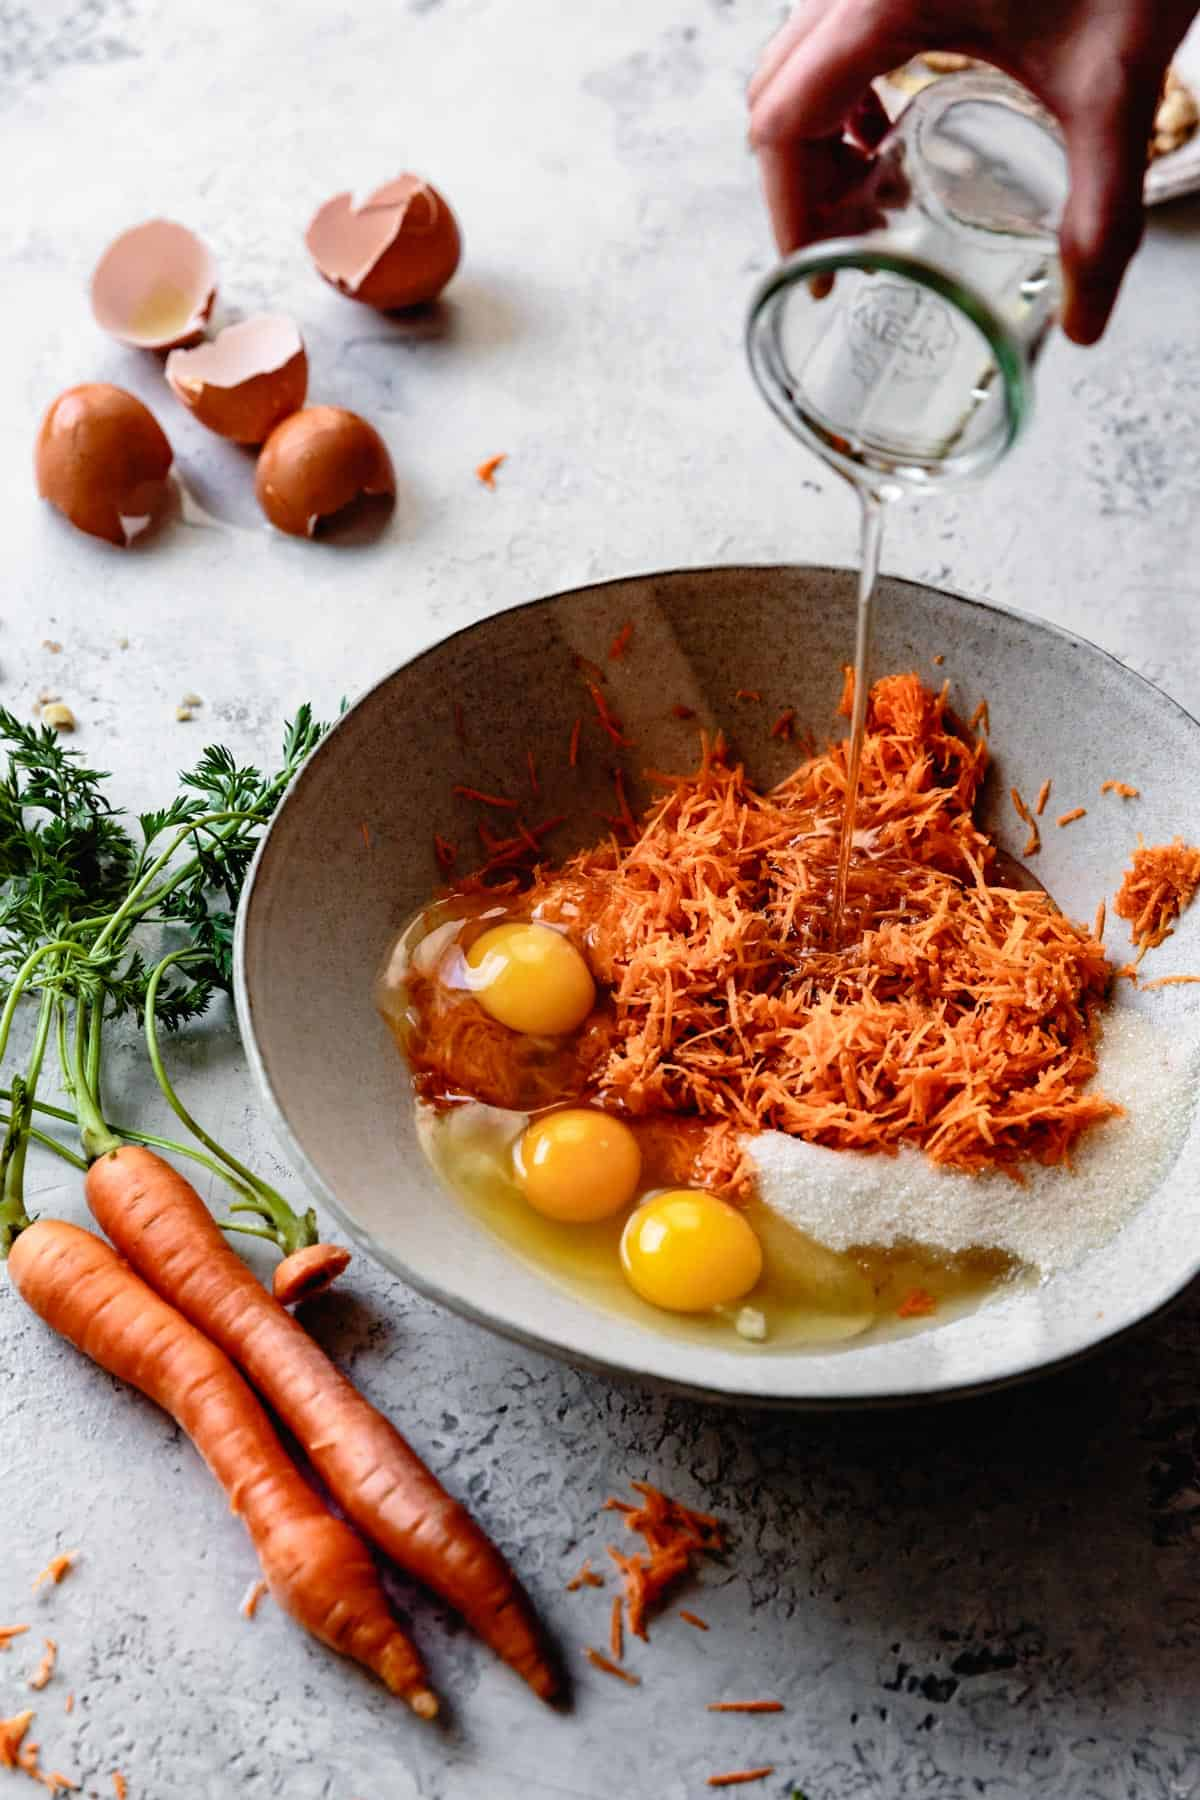 eggs and shredded carrots in bowl